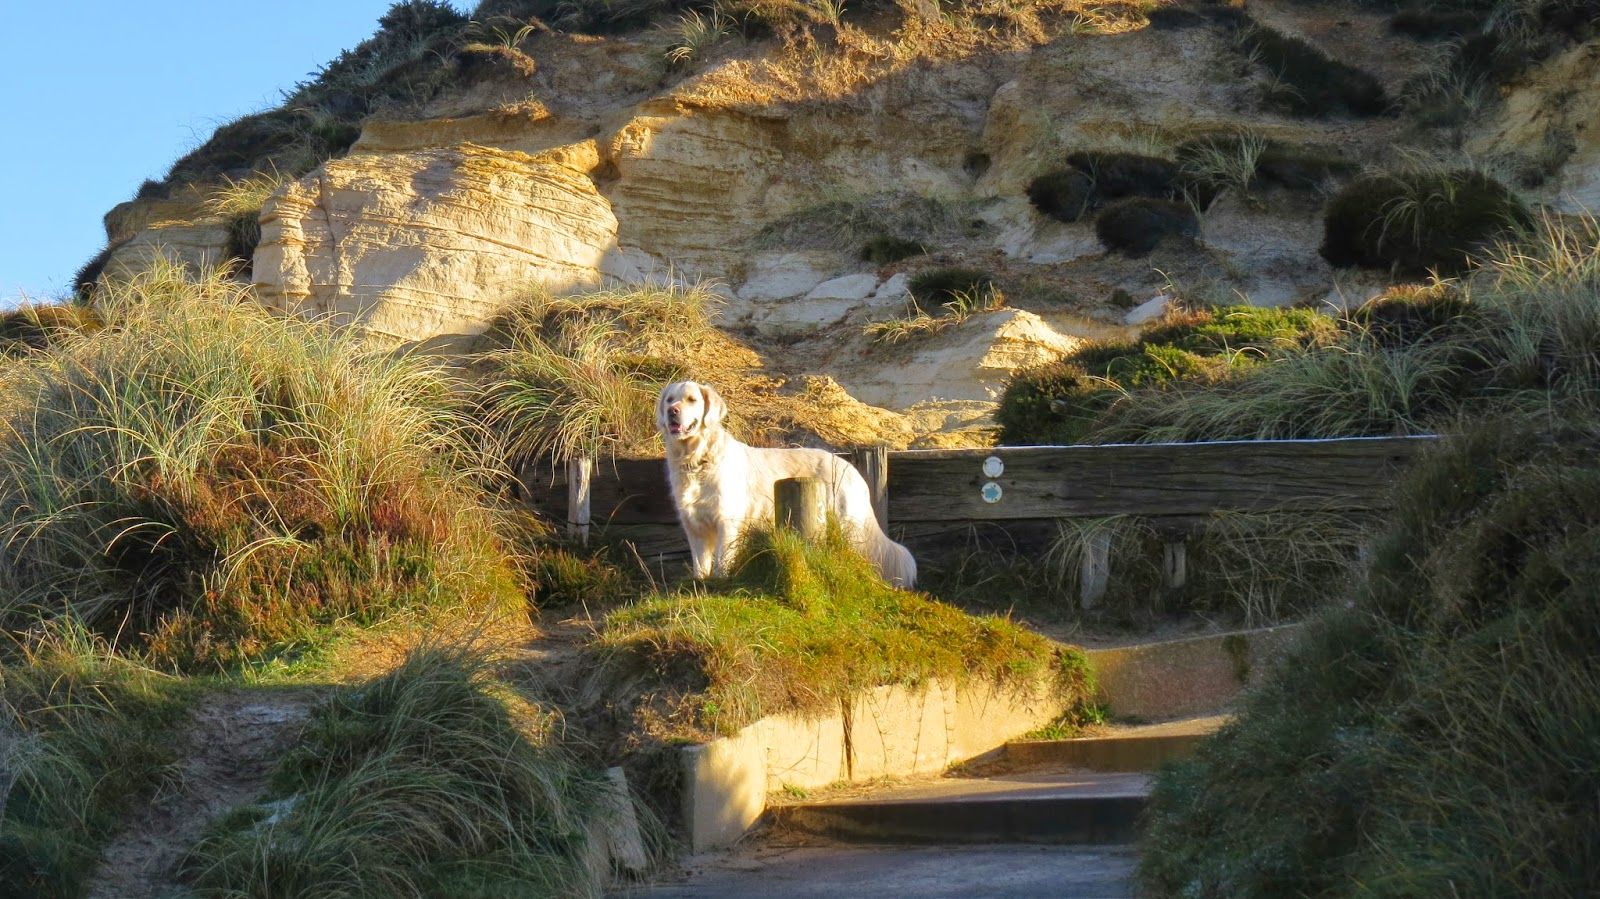 Boris the Golden Retriever at Hengistbury Head on a beautifully sunny day in December